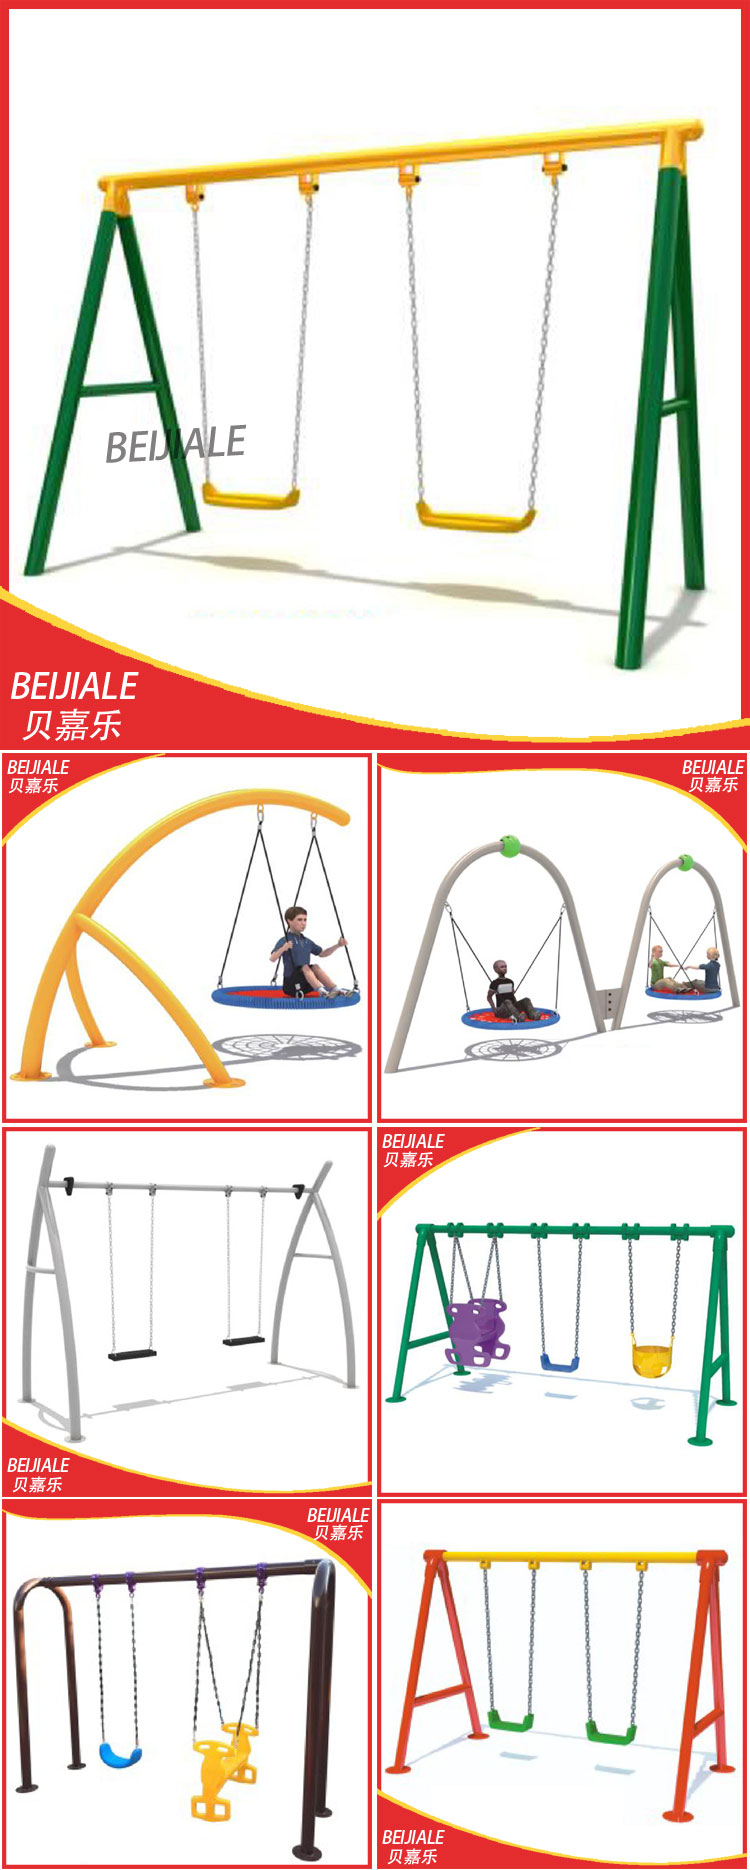 2015 Interesting Children Swing And Slide Set SS-135-1